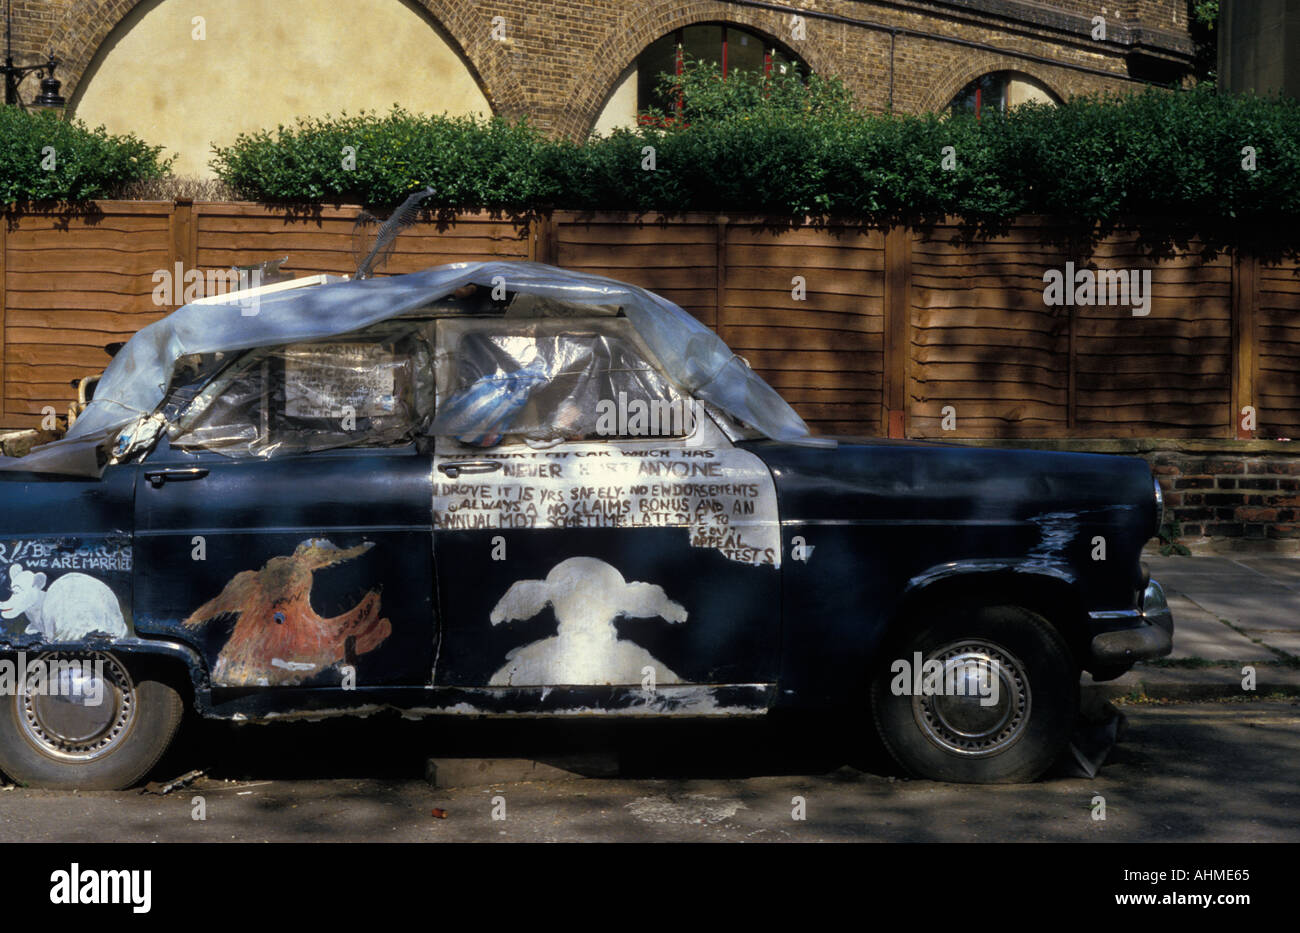 Old car for sale London UK Stock Photo: 2690660 - Alamy